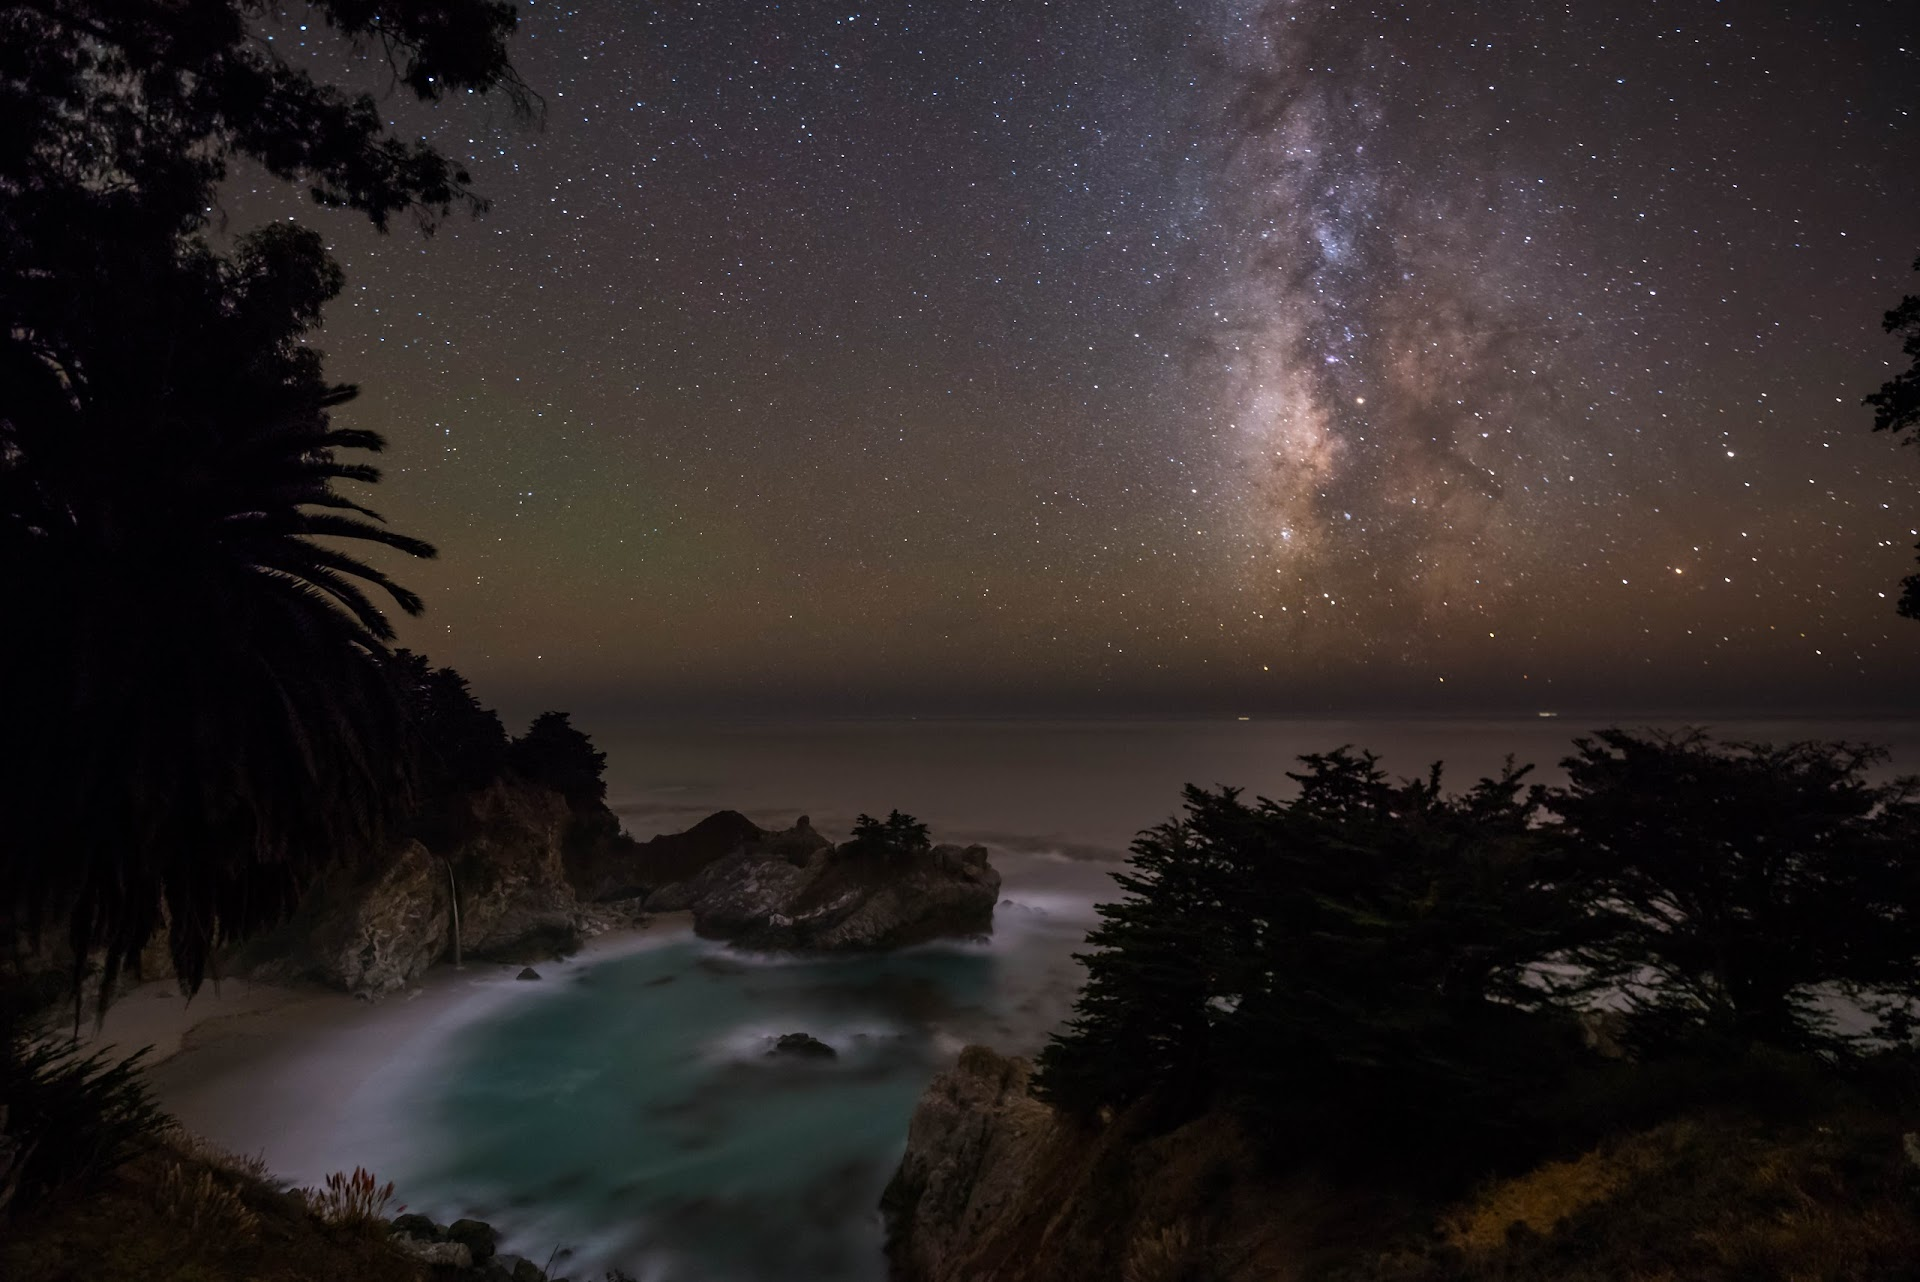 mcway falls photography, milky way, waterfall, night photography, composite, photoshop, stacking photos, beach, big sur, monterey county, california travel blogger, photgrapher, san francisco bay area, north bay